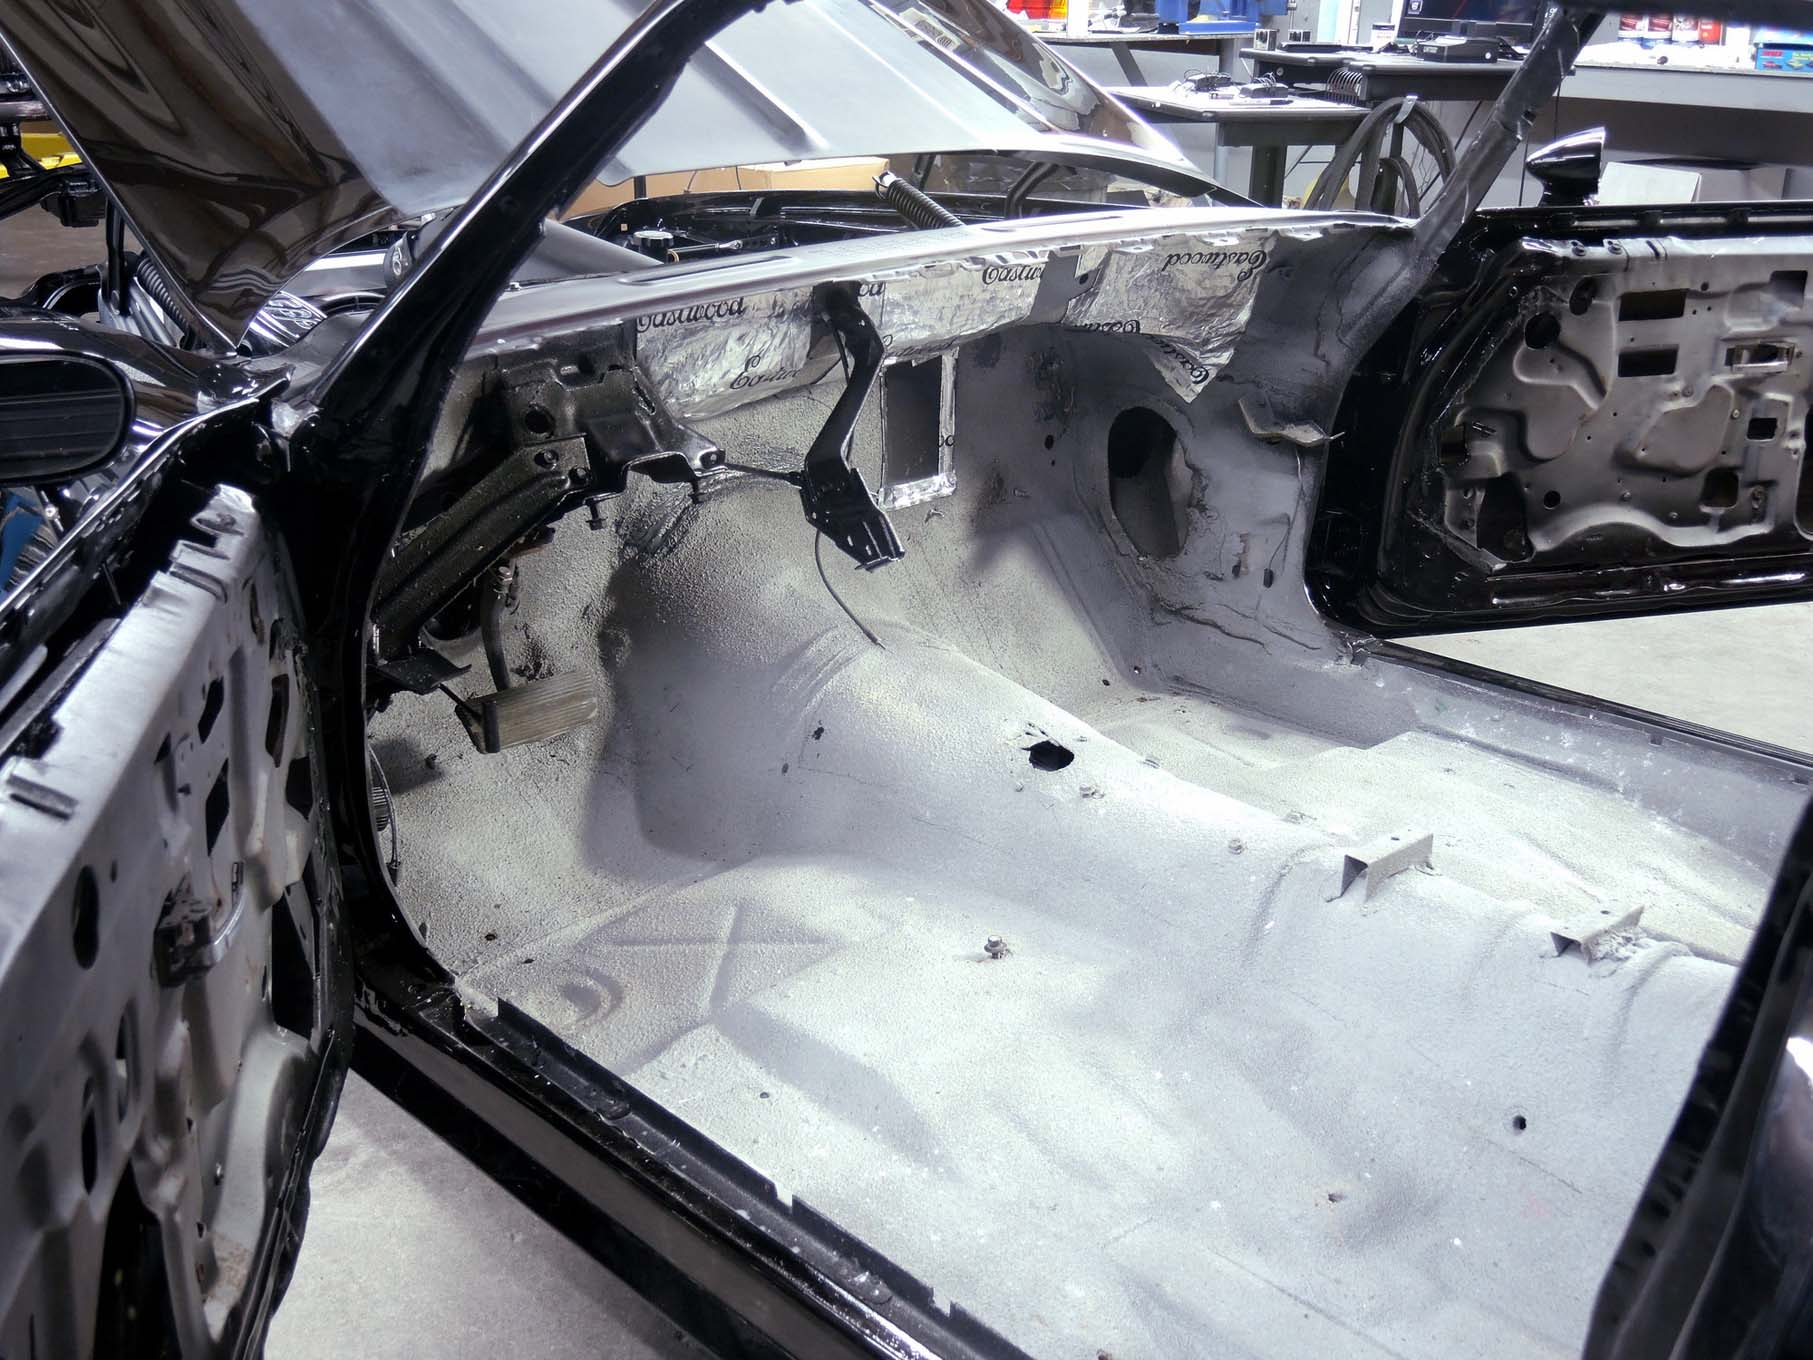 We are starting with a clean slate. The tub of our F-body is rust-free, empty, and sprayed down with Eastwood's thermal insulation coating, as well as peppered with a few insulation tiles to dampen the transfer of road noise and heat from the engine and exhaust.